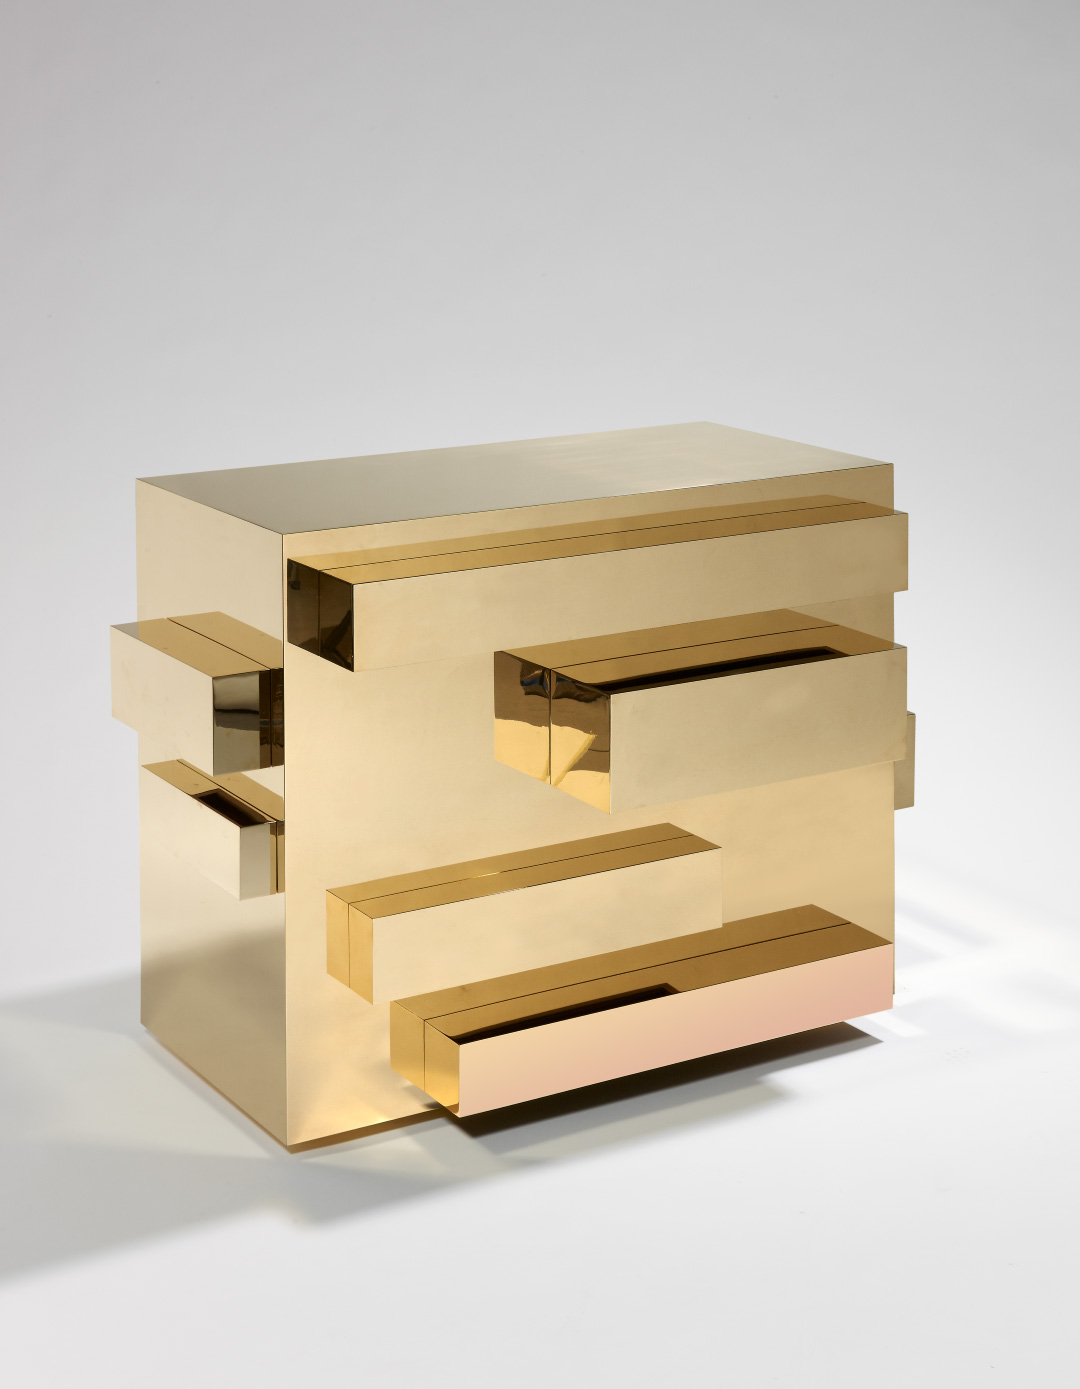 MB Chest of Drawers 'Monolith' - 1.jpg